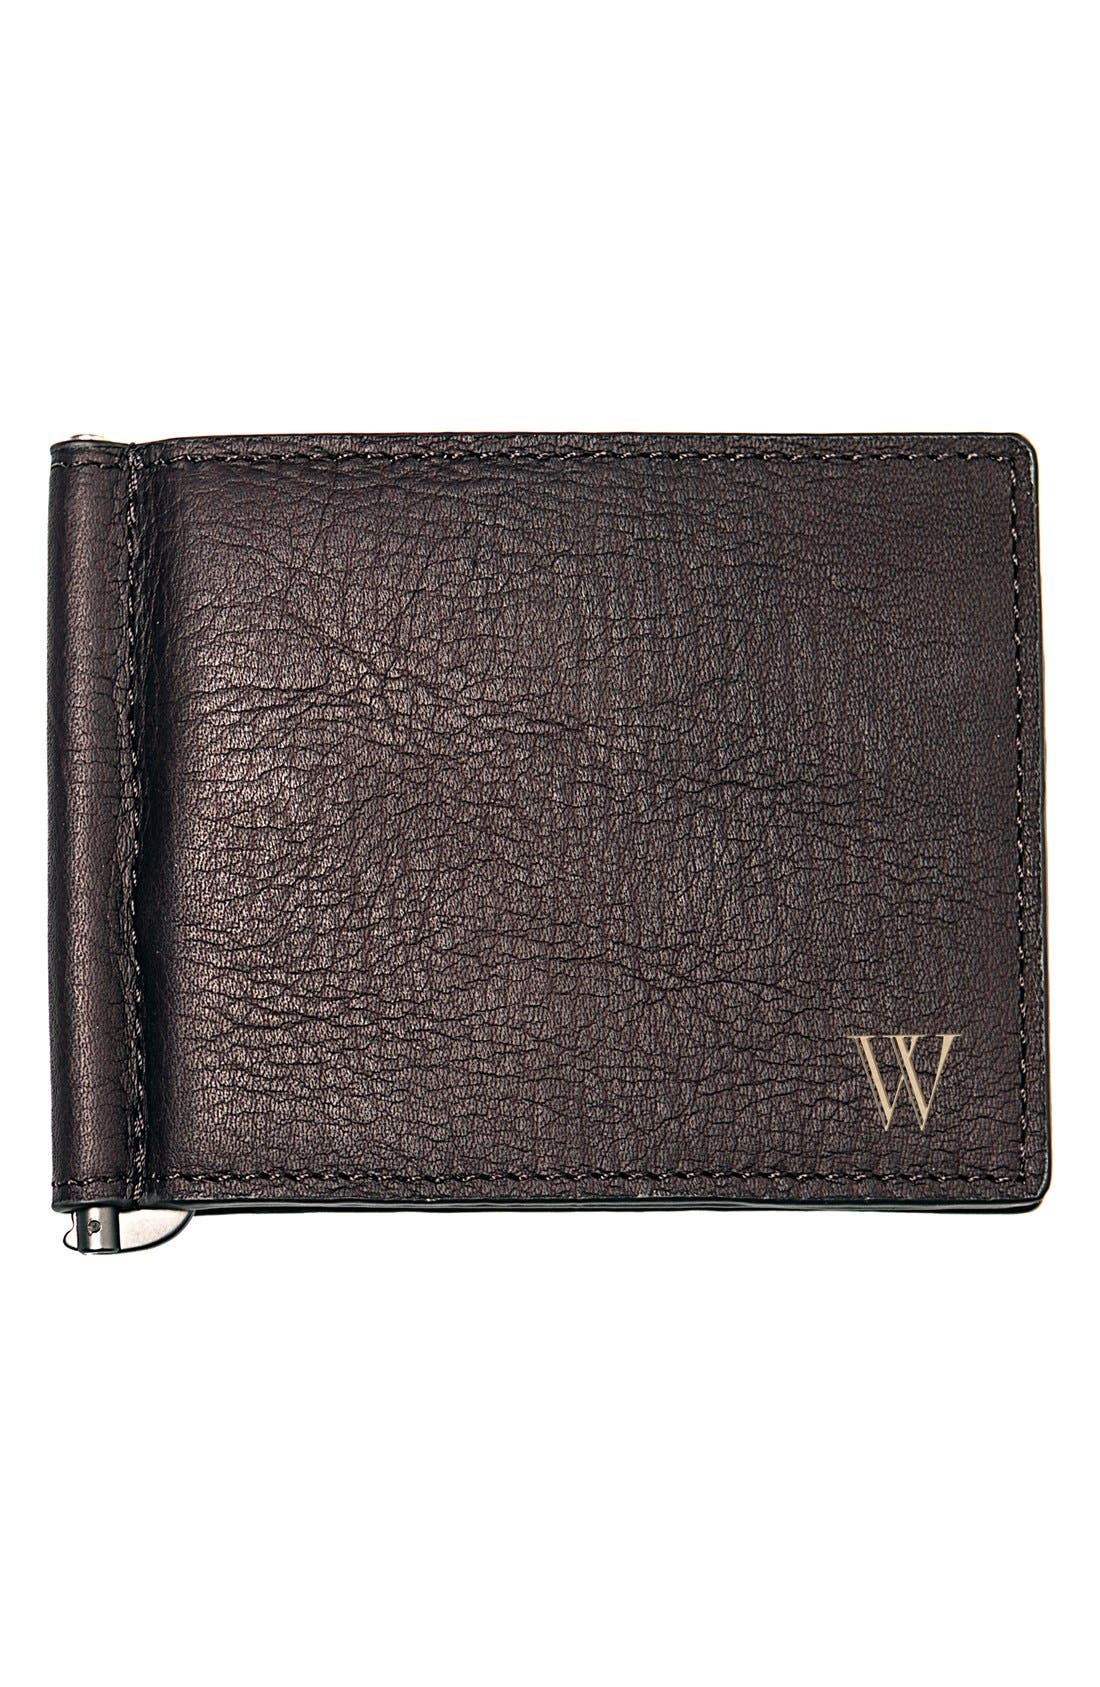 CATHYS CONCEPTS Monogram Leather Wallet & Money Clip